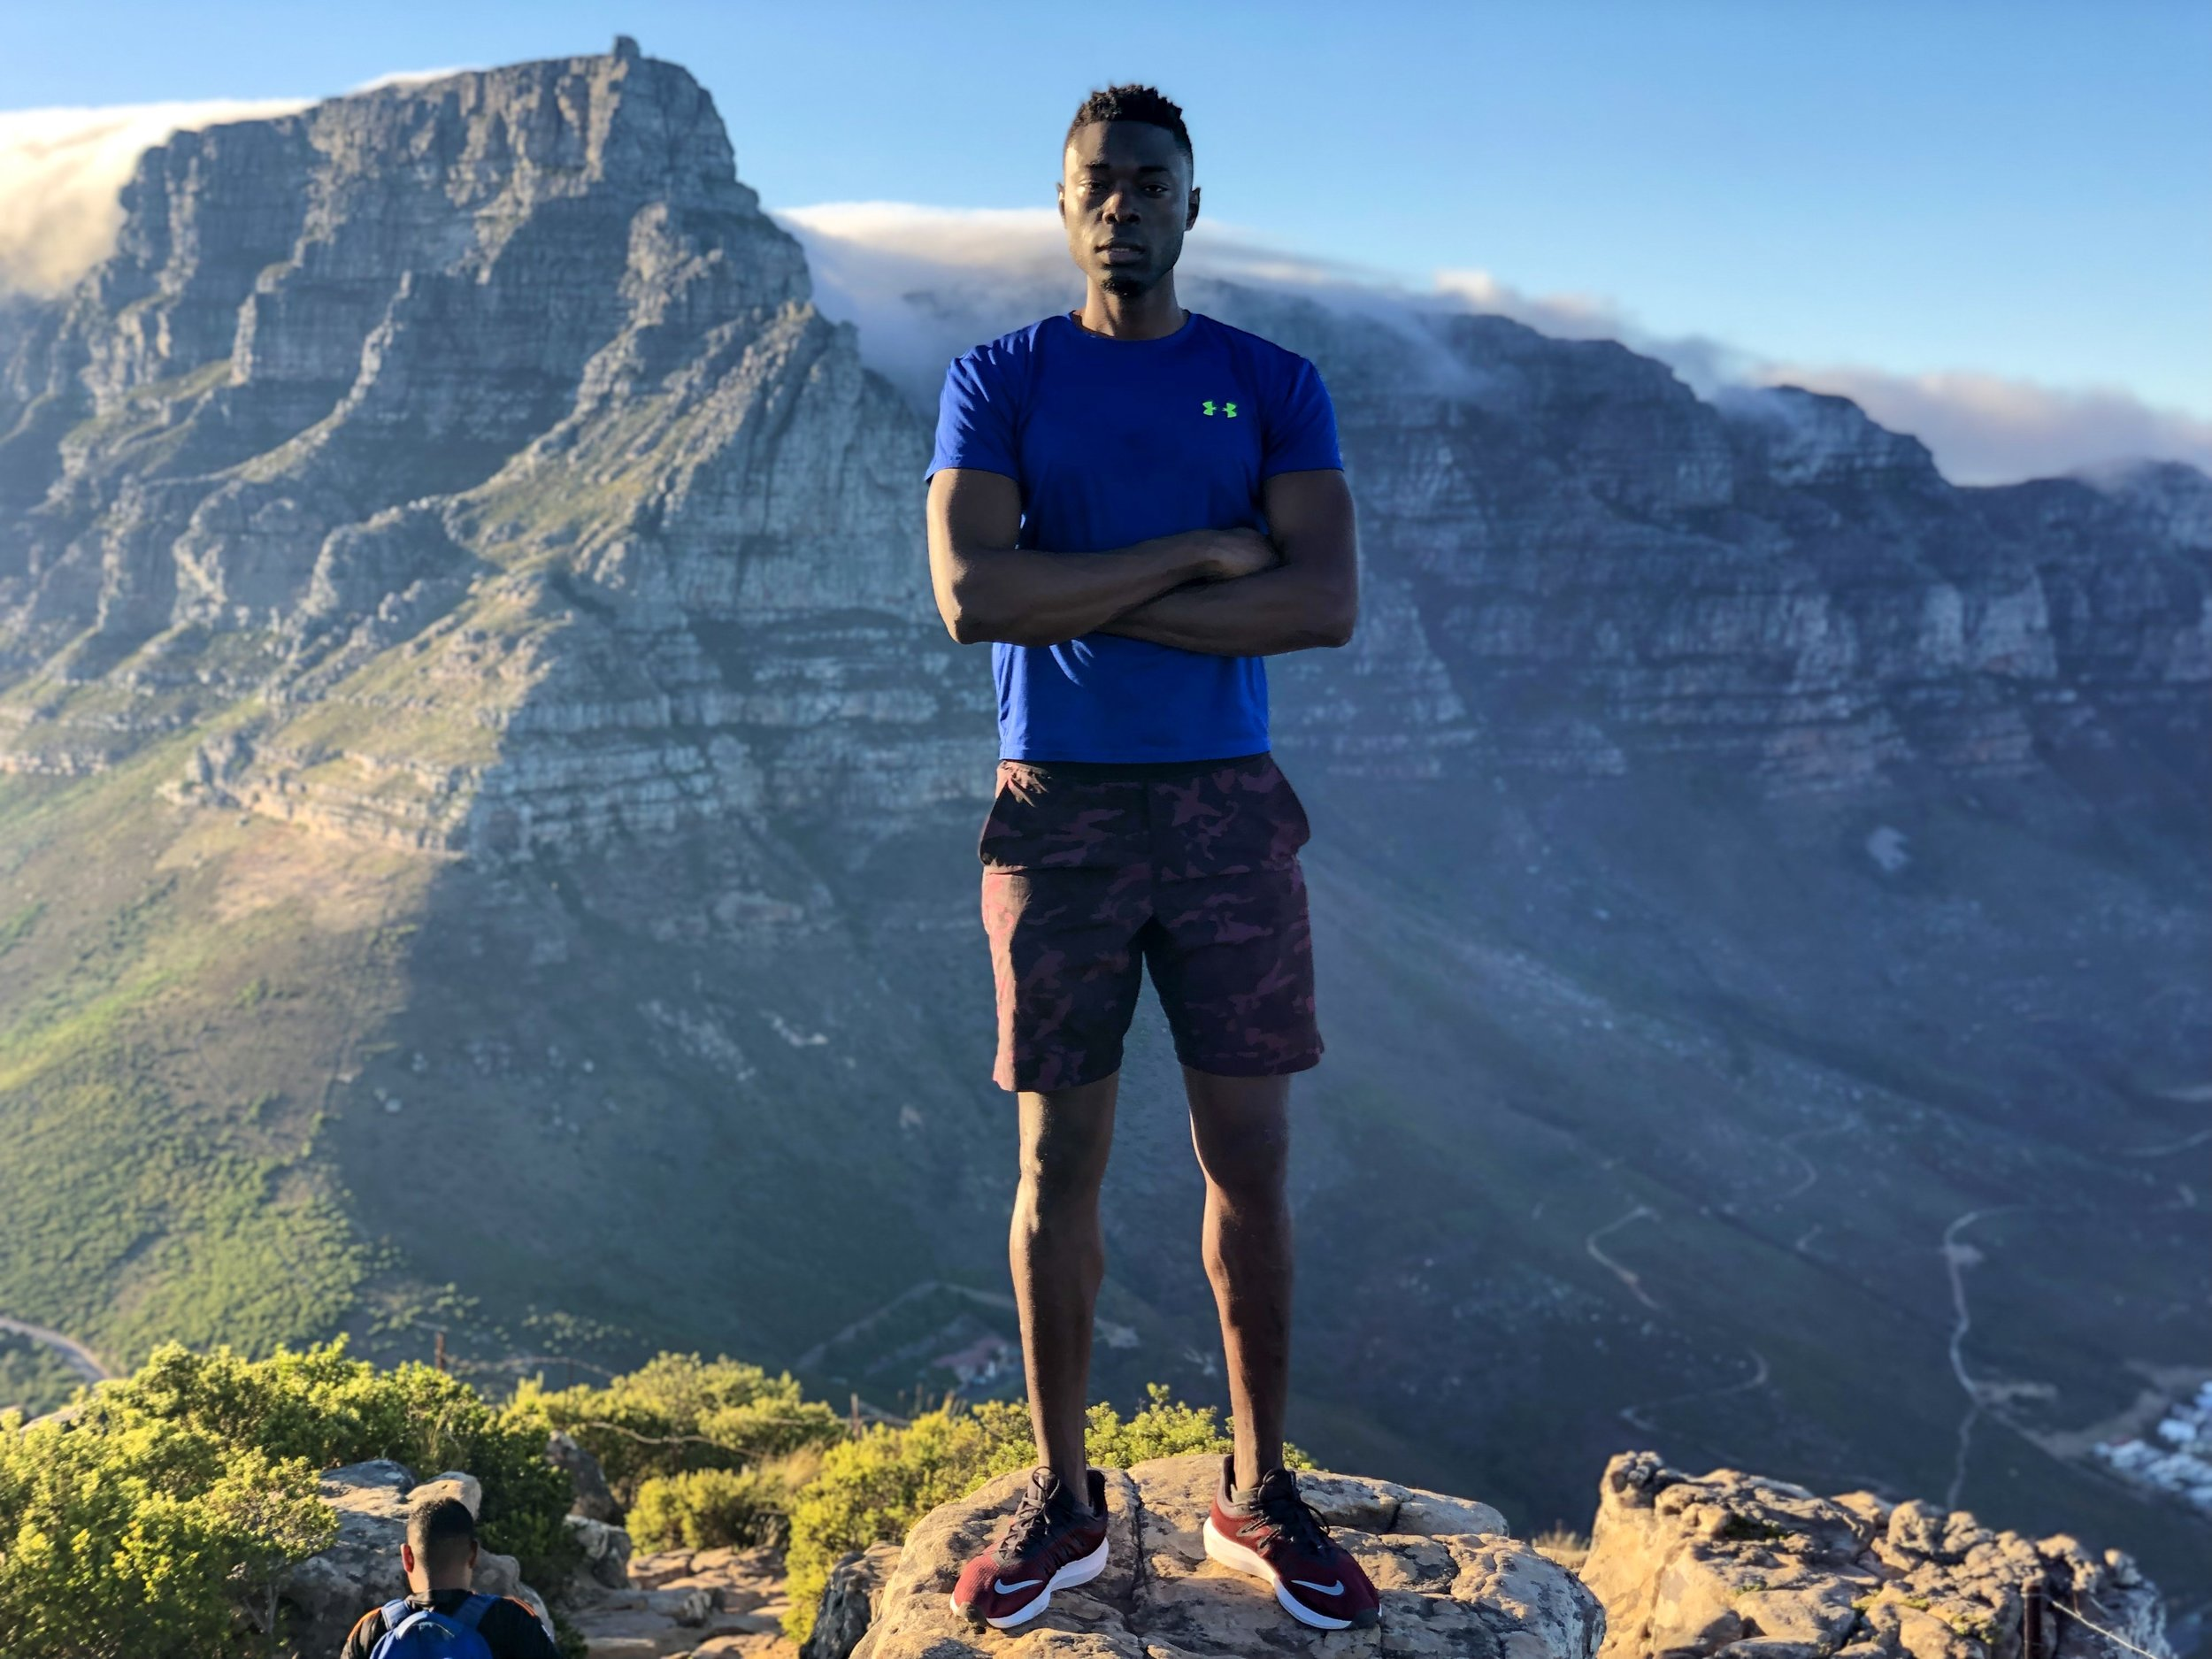 My first hike upon my return in the Mother City.